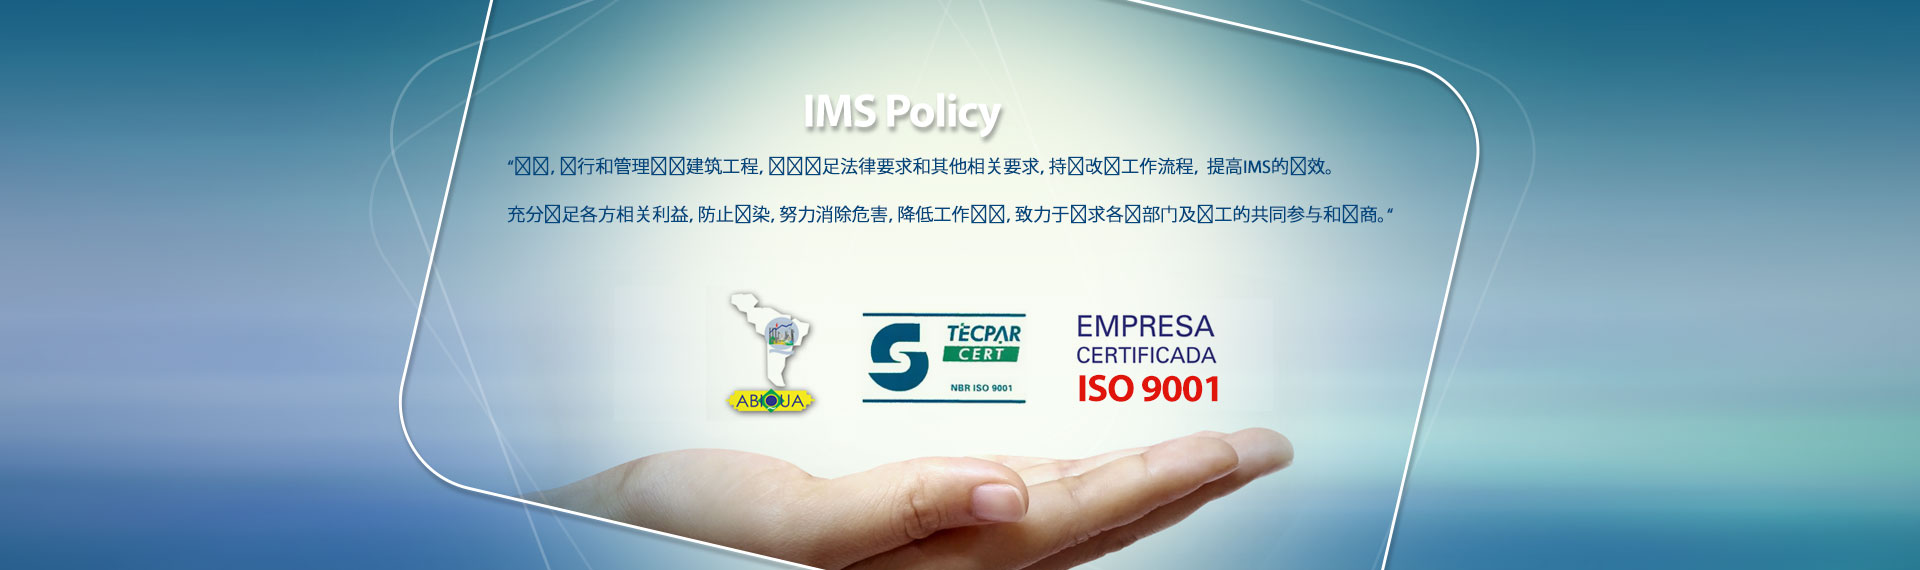 banner-quality-policy-chines-2018